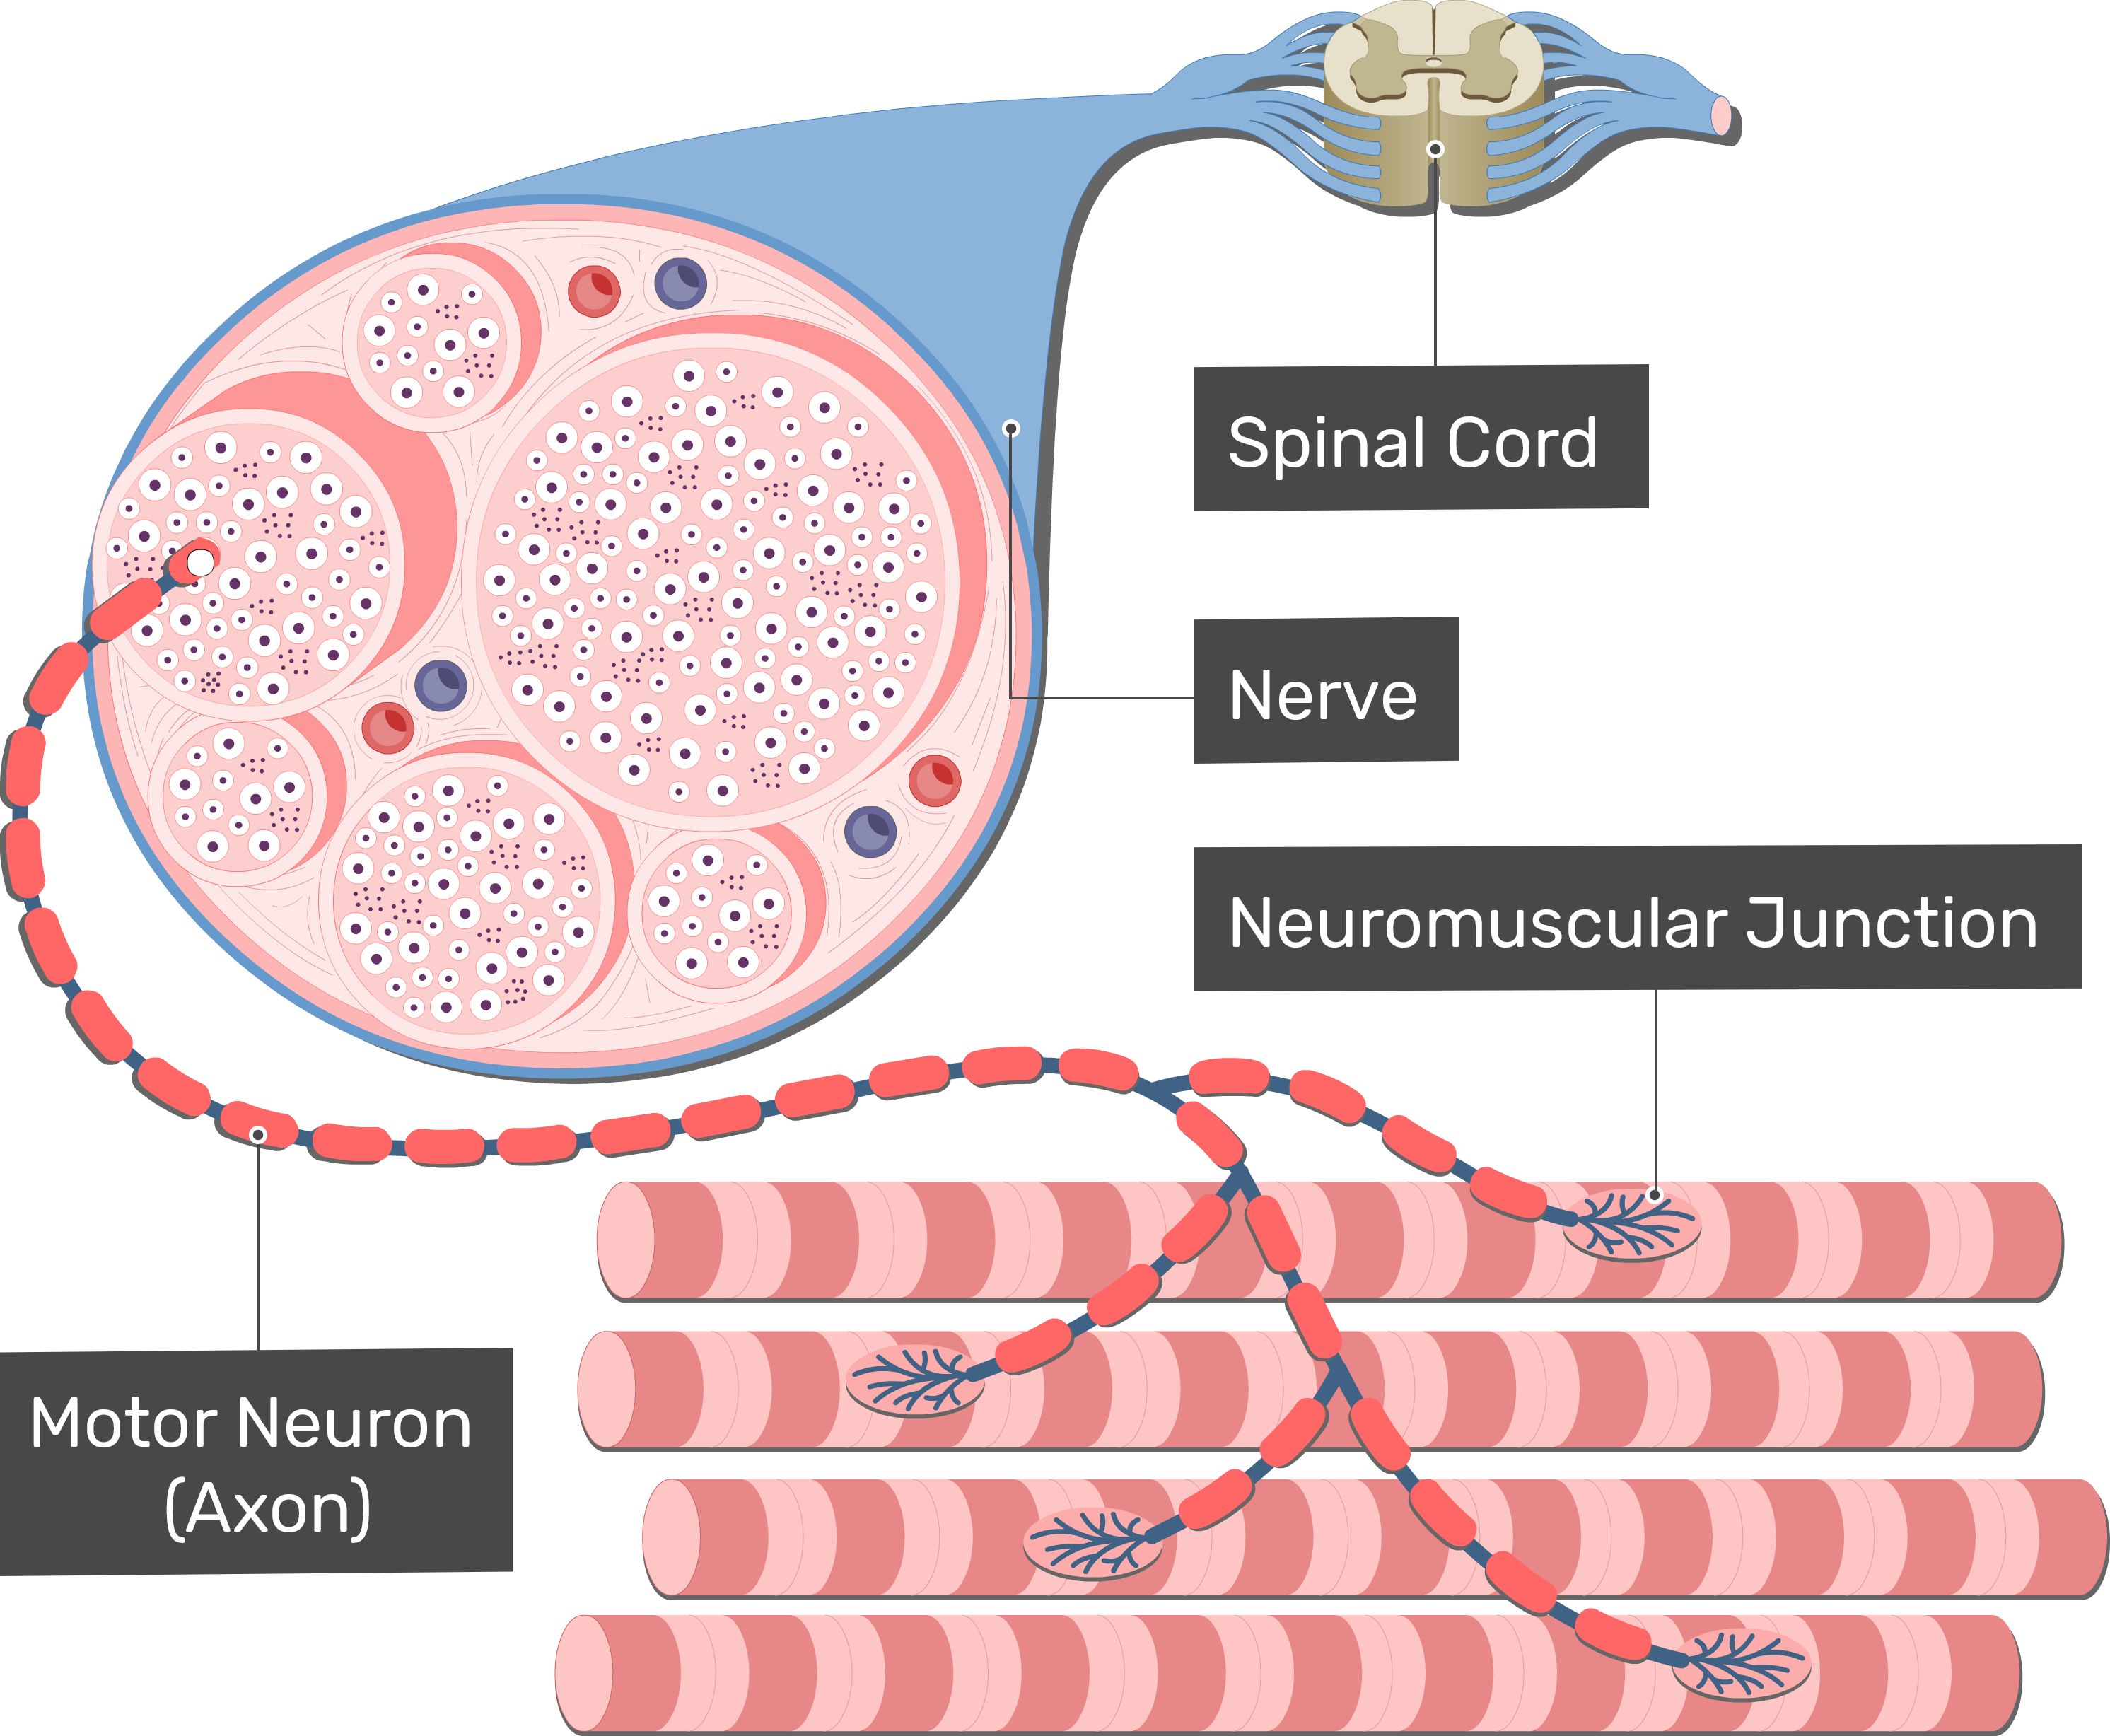 An illustration showing the spinal cord, a spinal nerve, an axon of a motor neuron connecting to skeletal muscle fibers through a neuromuscular junction